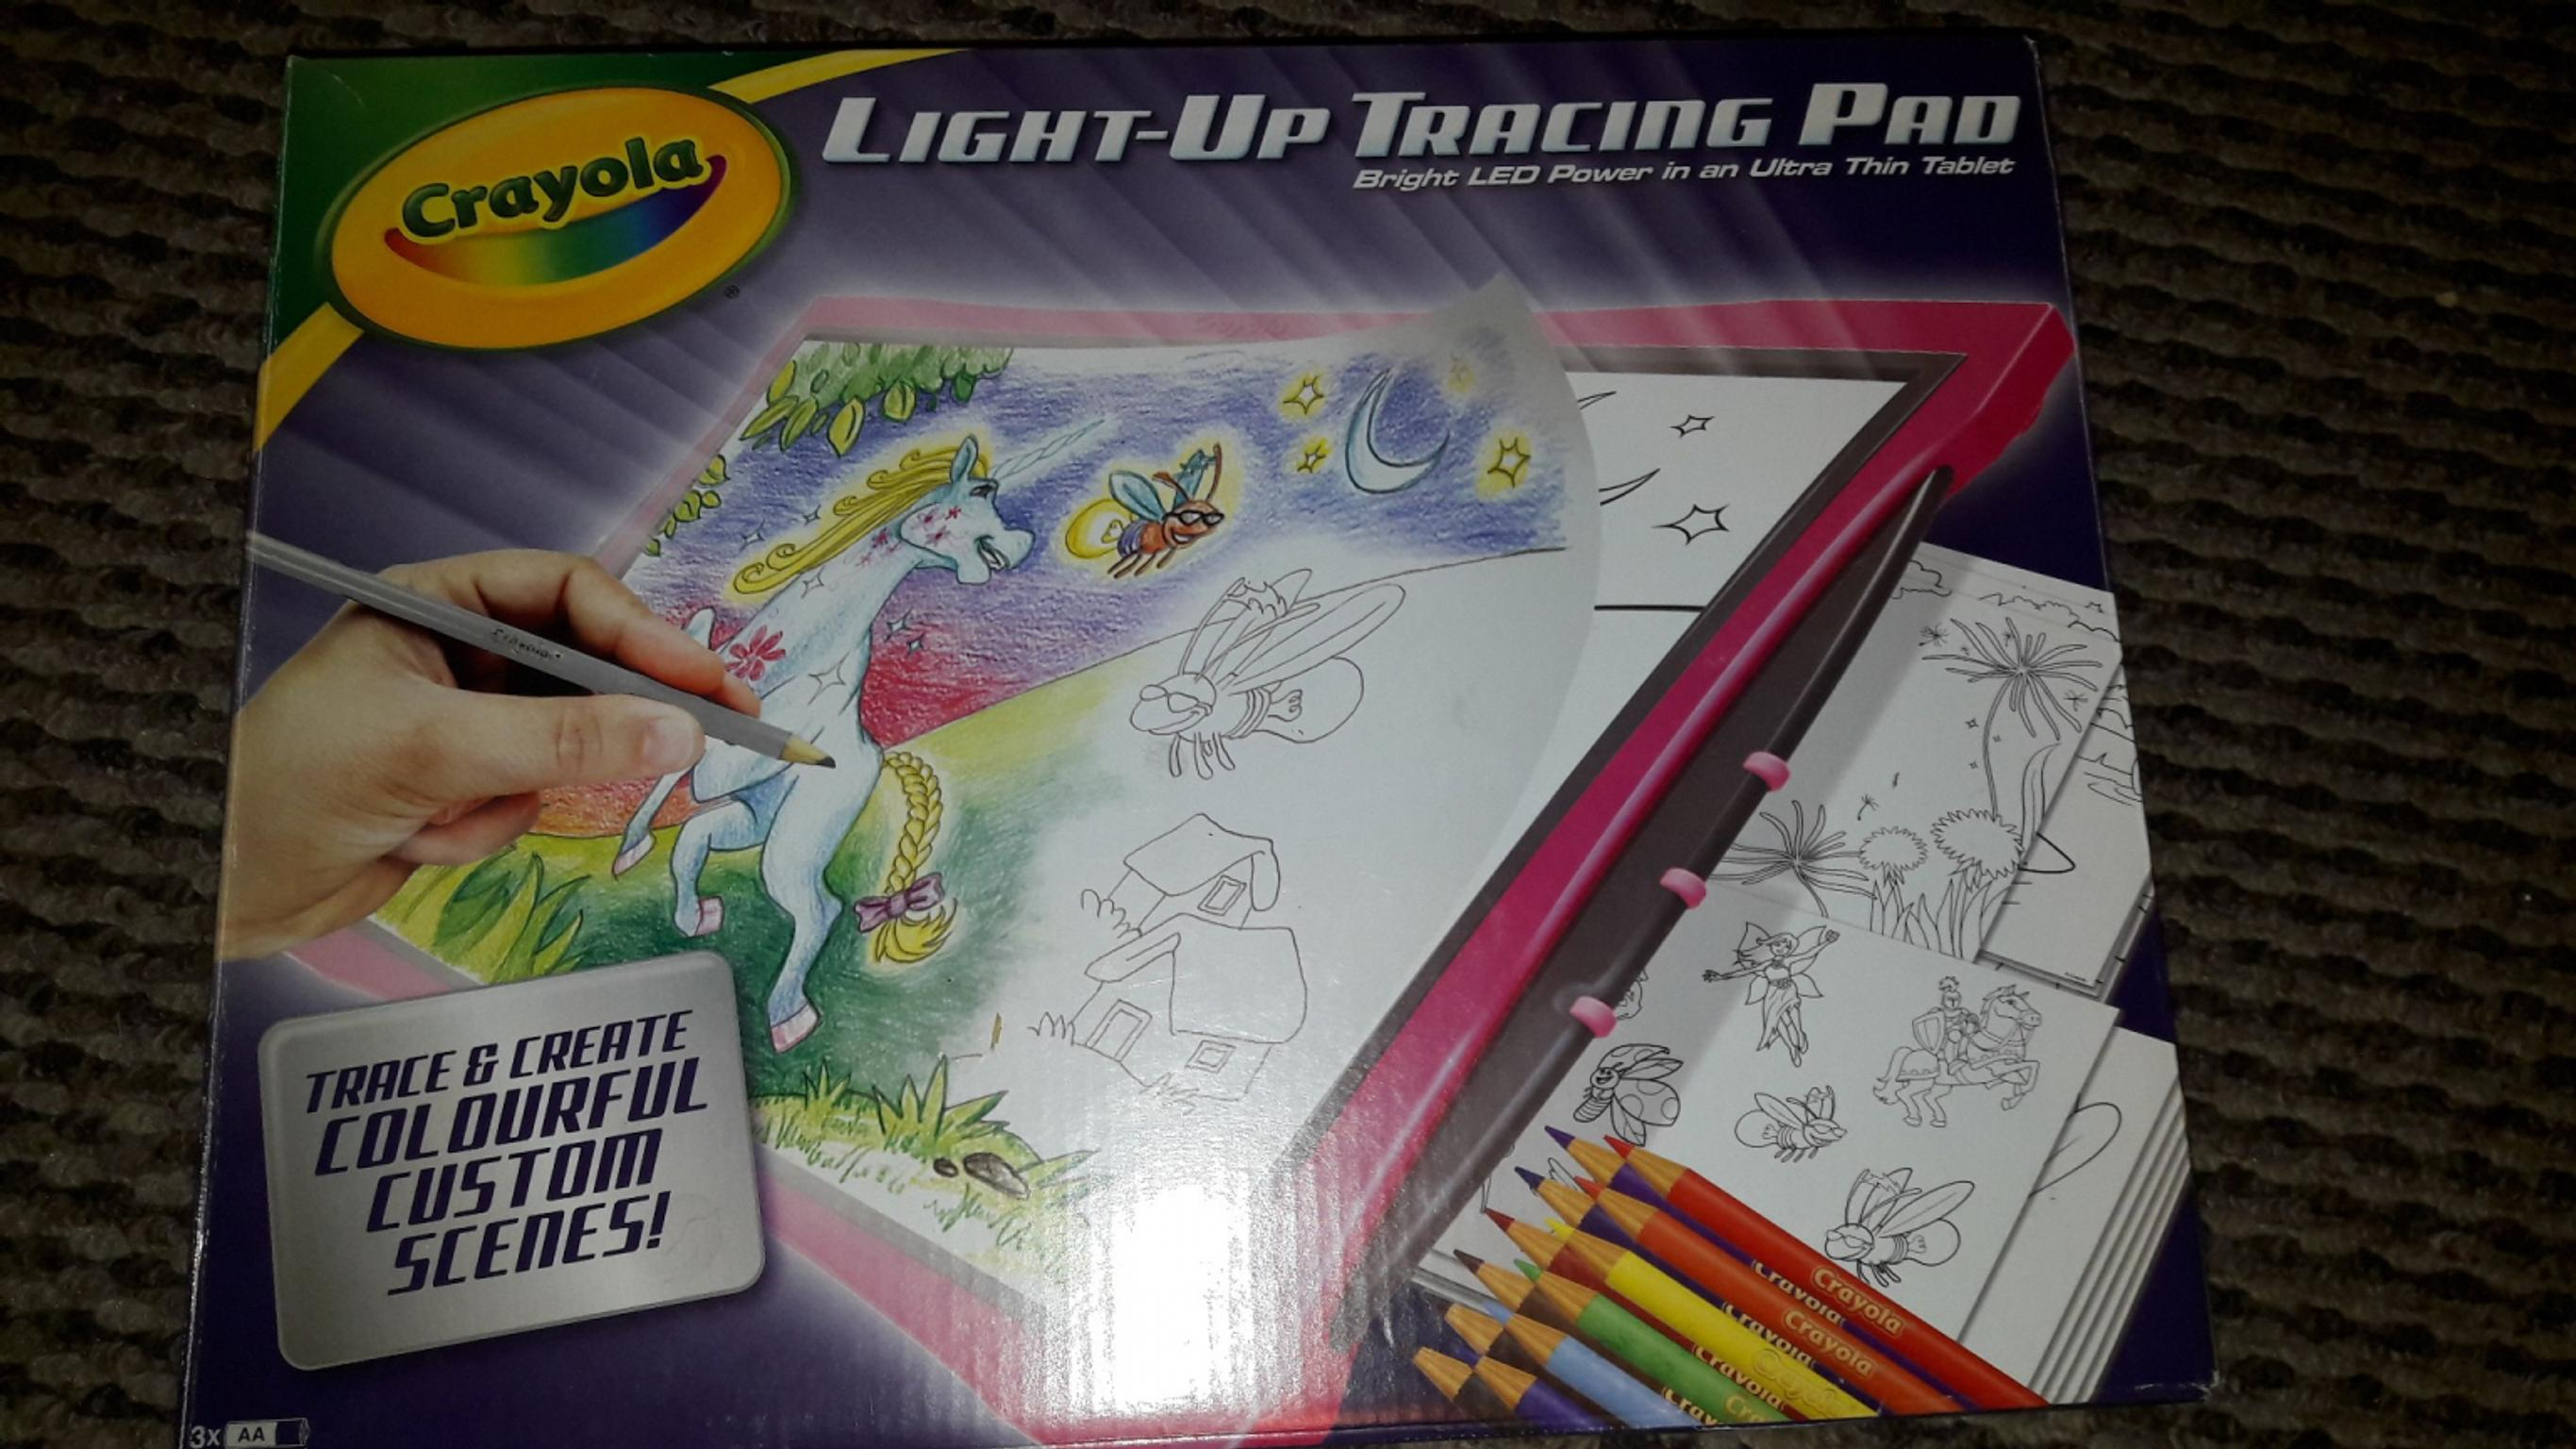 Crayola Light Up Tracing Pad In Pr5 Ribble For 6 00 For Sale Shpock